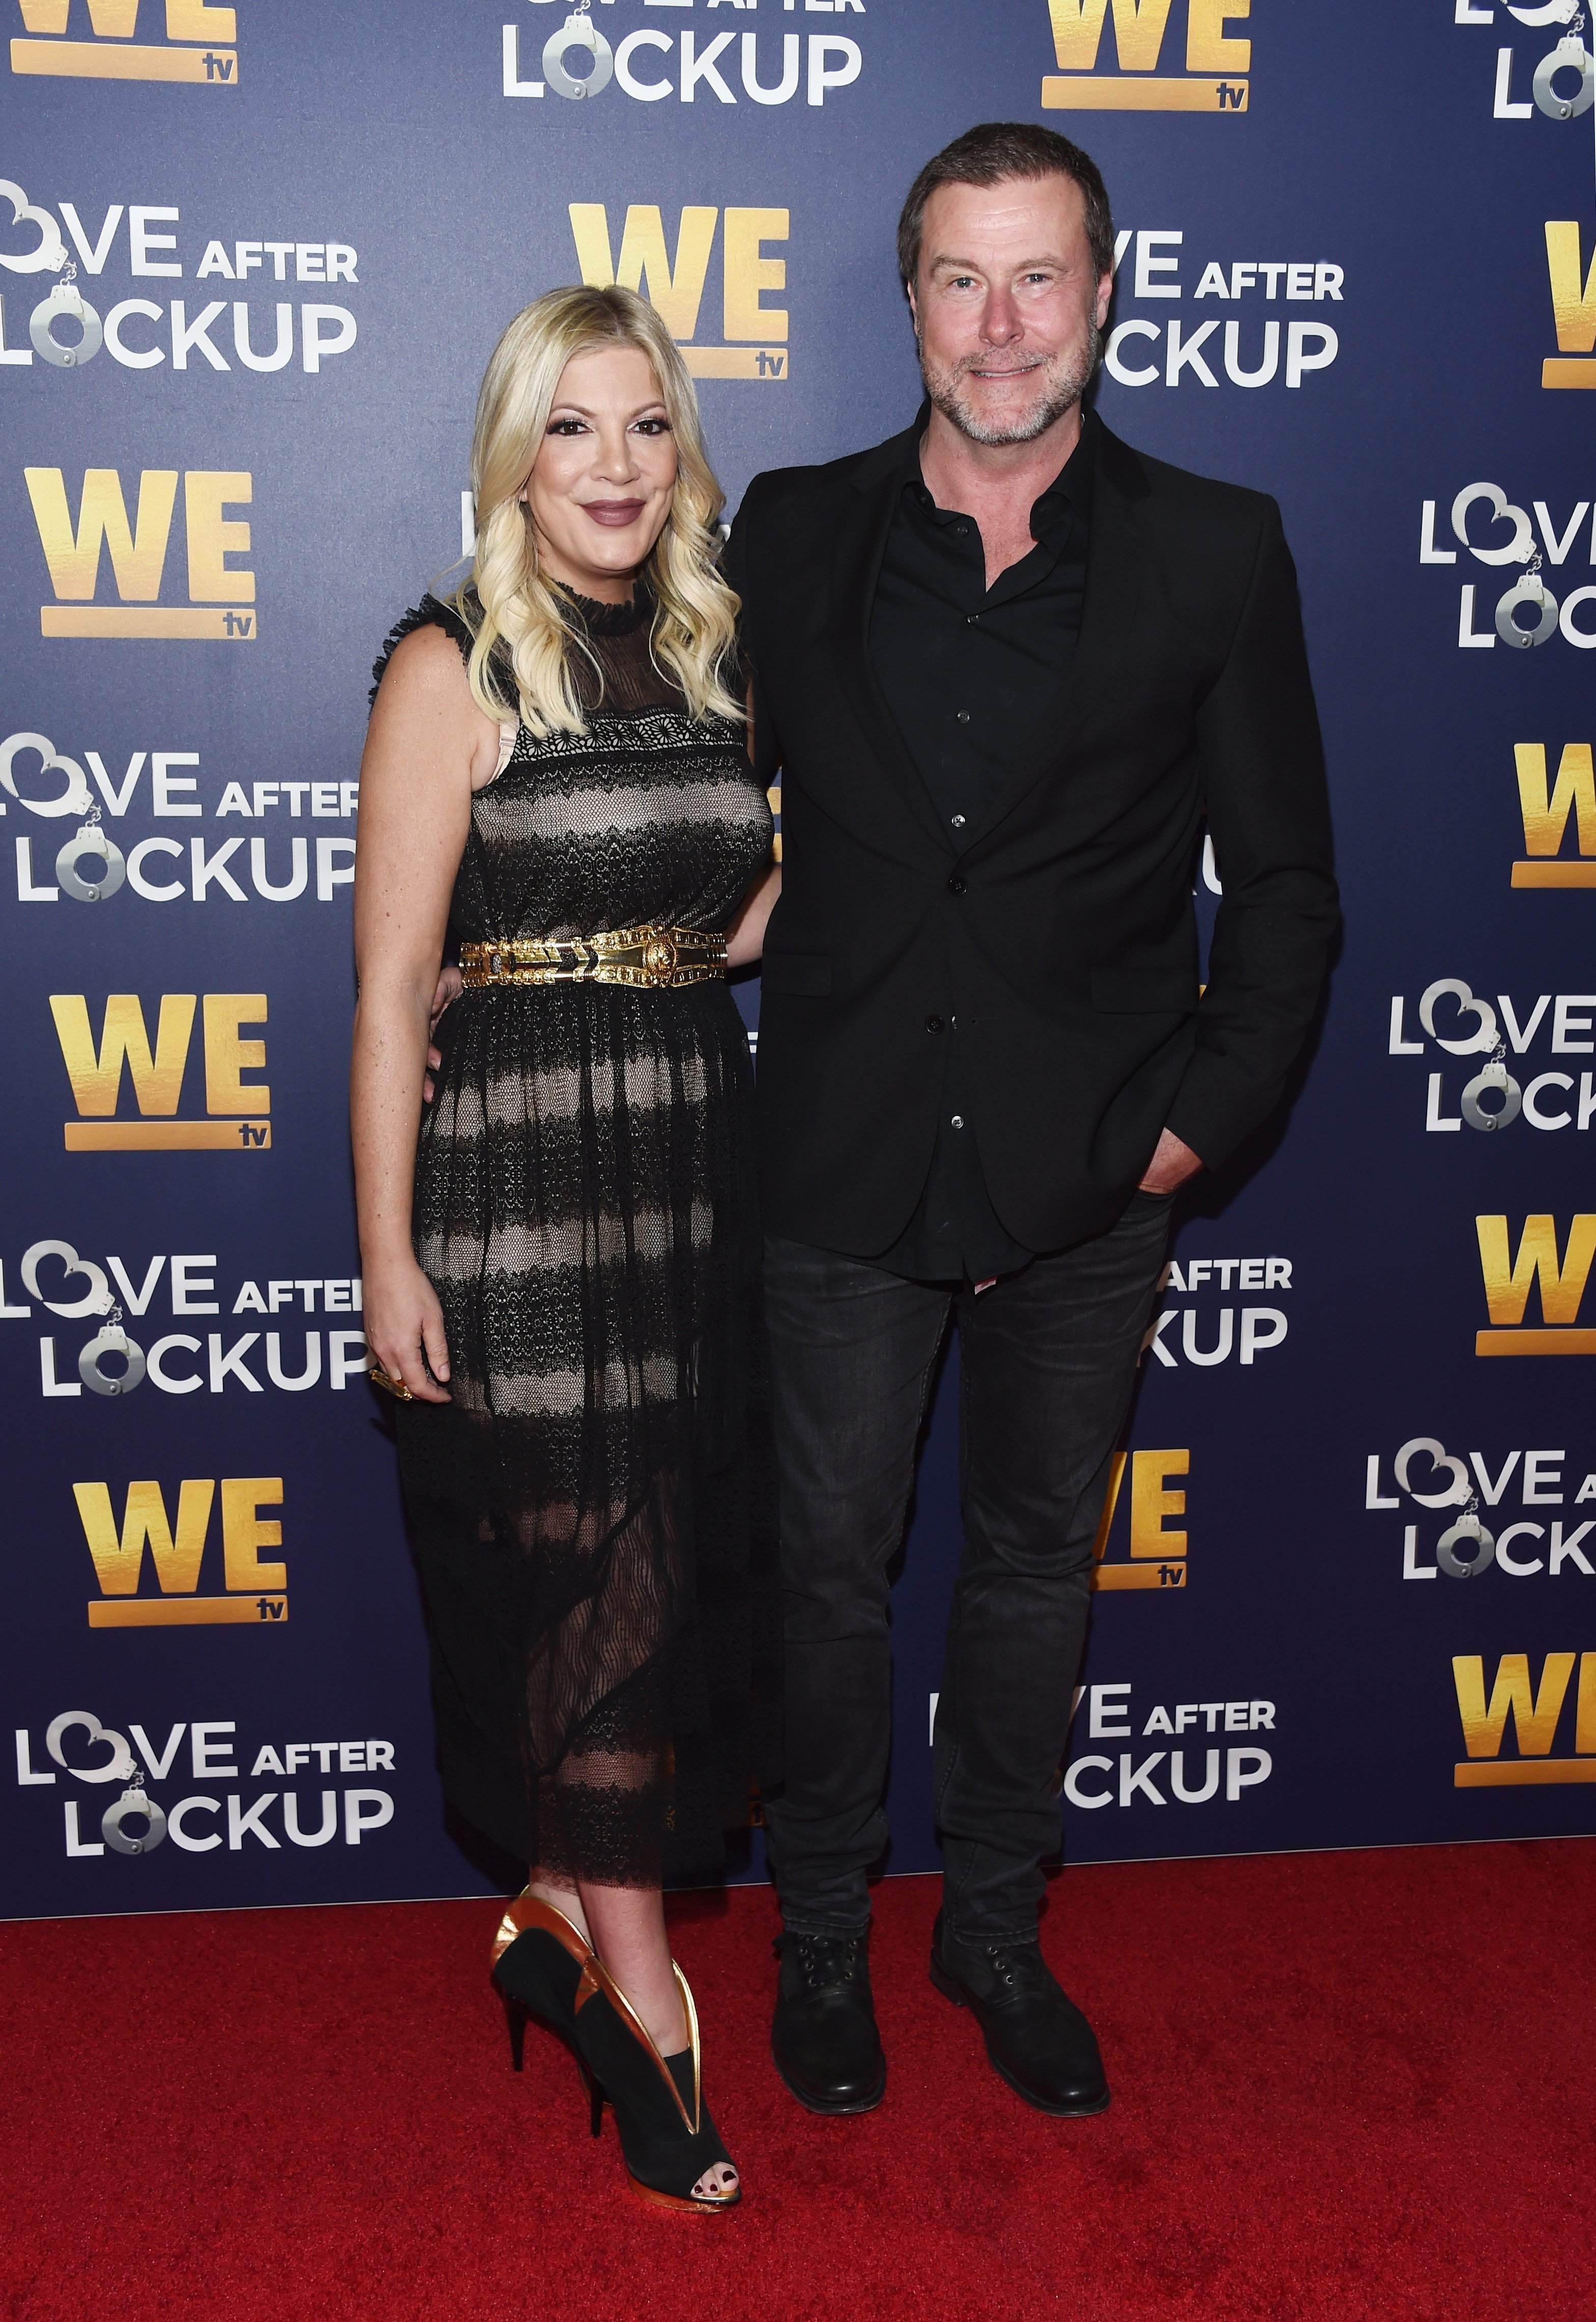 Tori Spelling and Dean McDermott attend Real Love: Relationship Reality TV's Past, Present & Future event in Beverly Hills, California | Photo: Getty Images